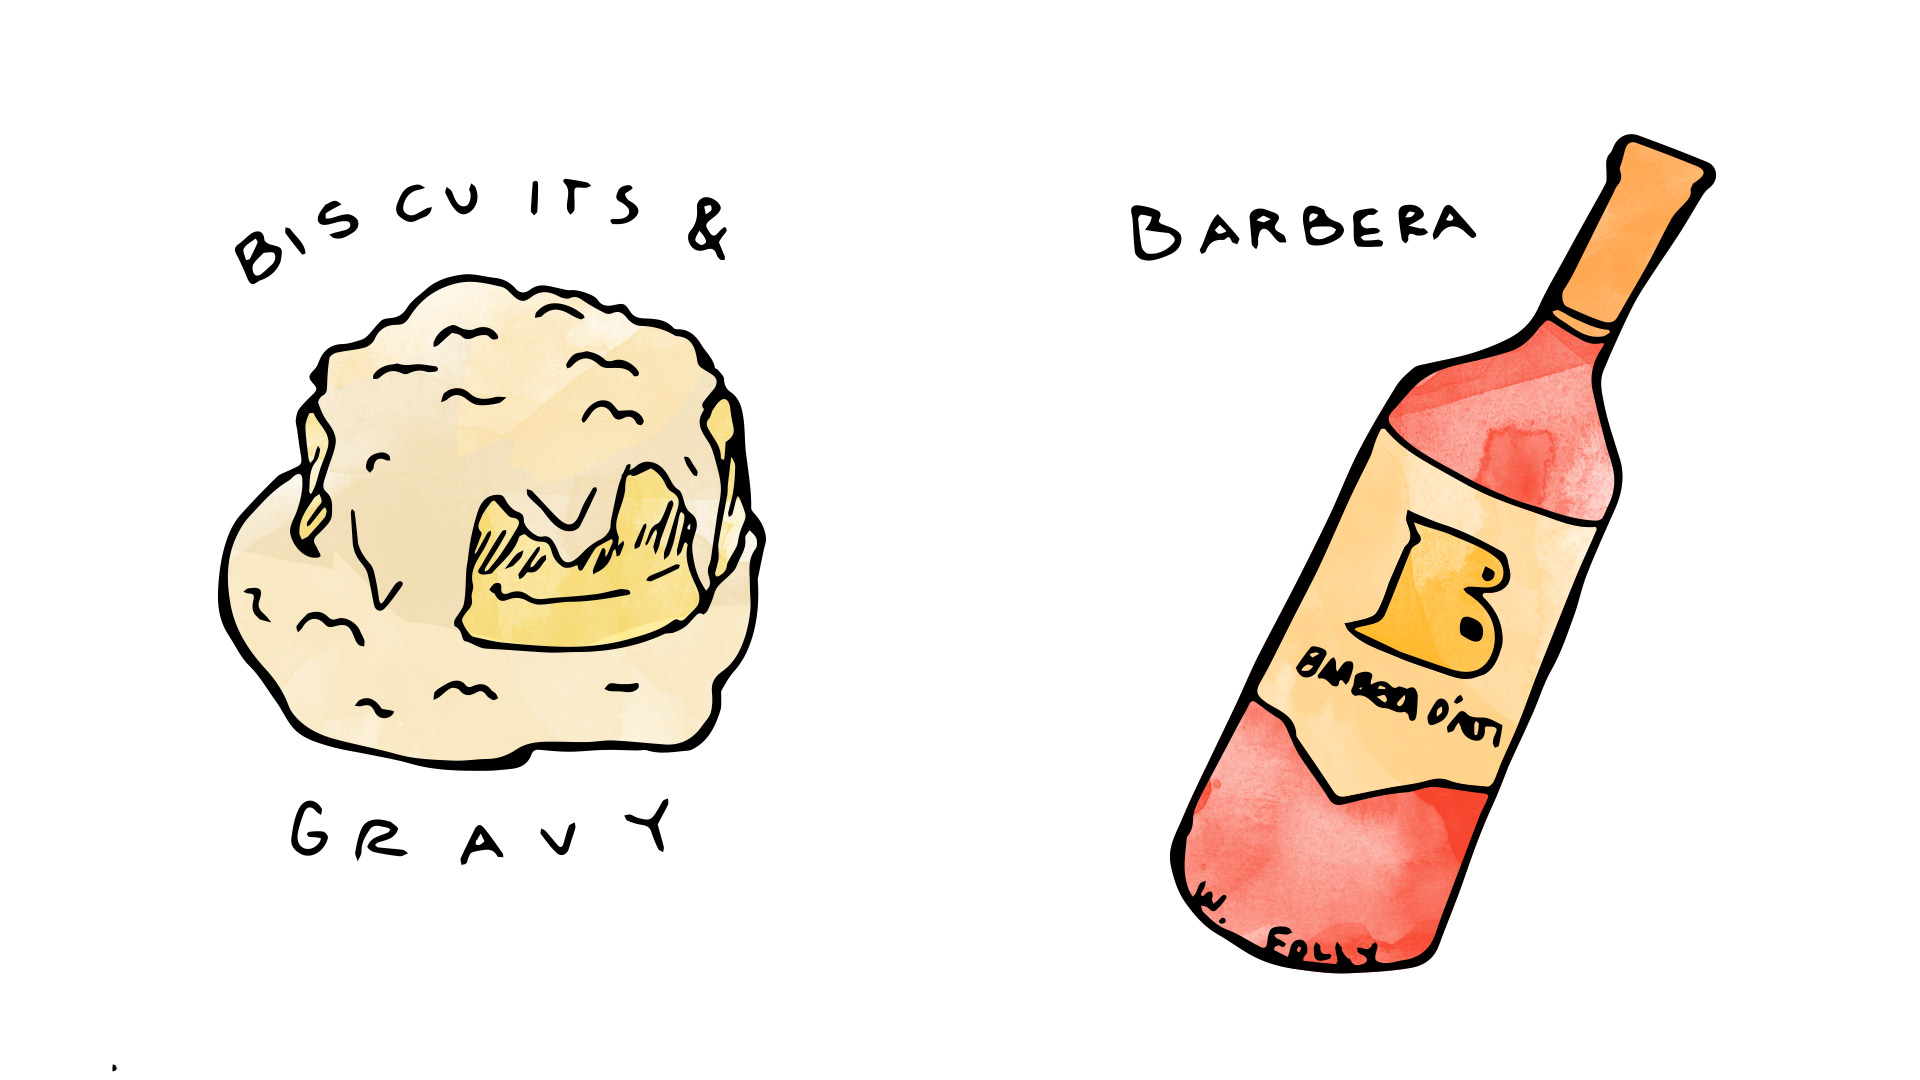 Biscuit and Gravy wine pairing with Barbera illustration by Wine Folly